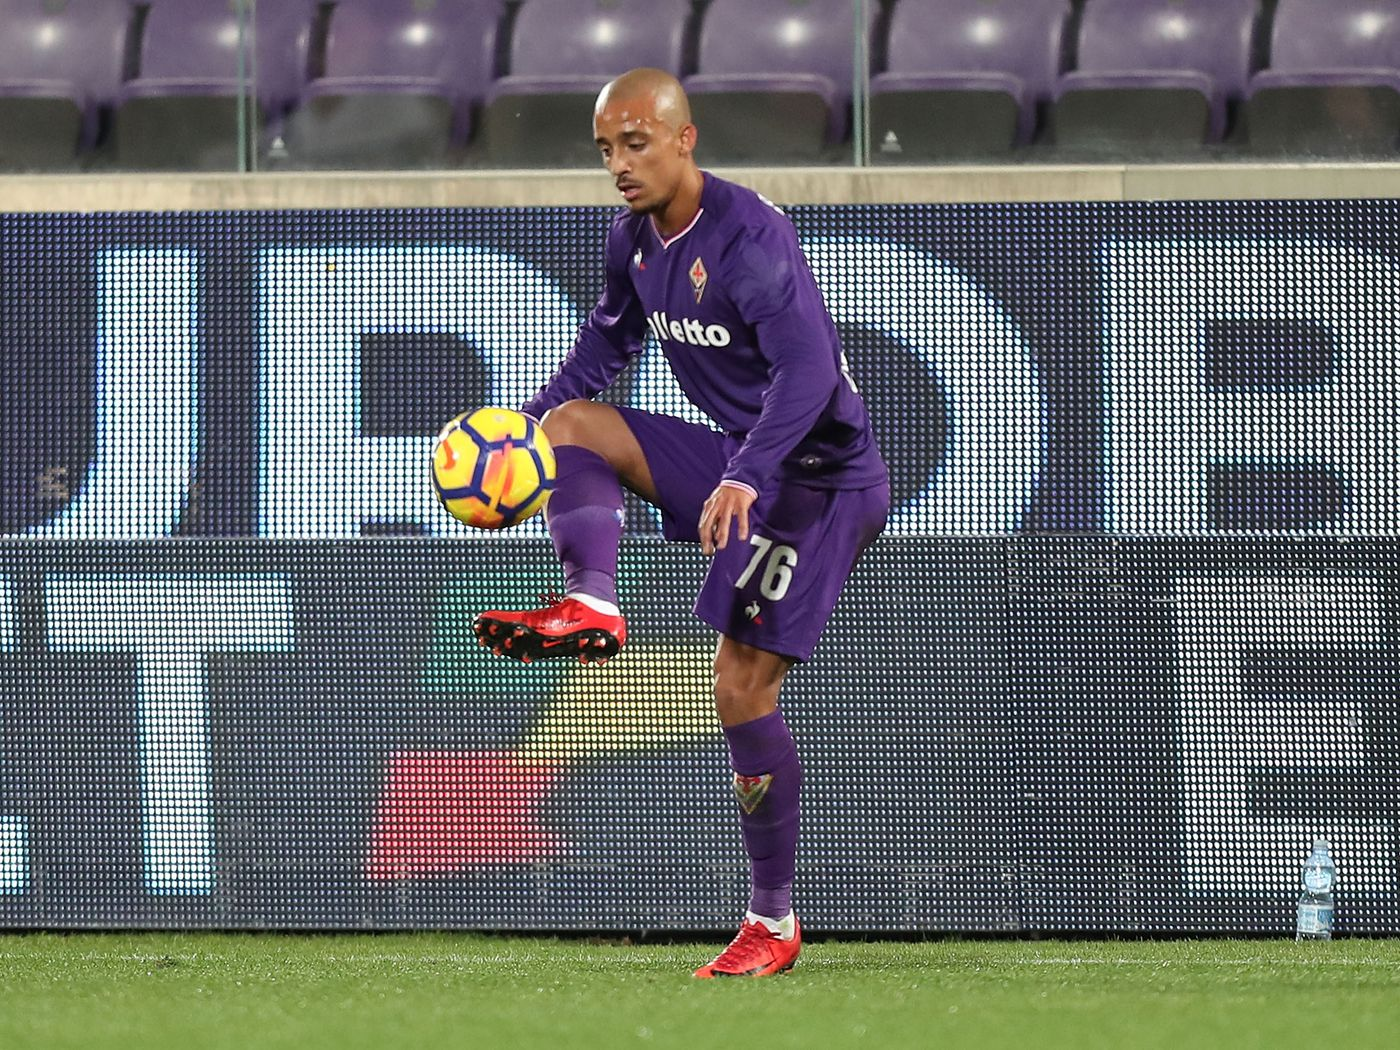 Benfica interested in Fiorentina's Bruno Gaspar - Viola Nation